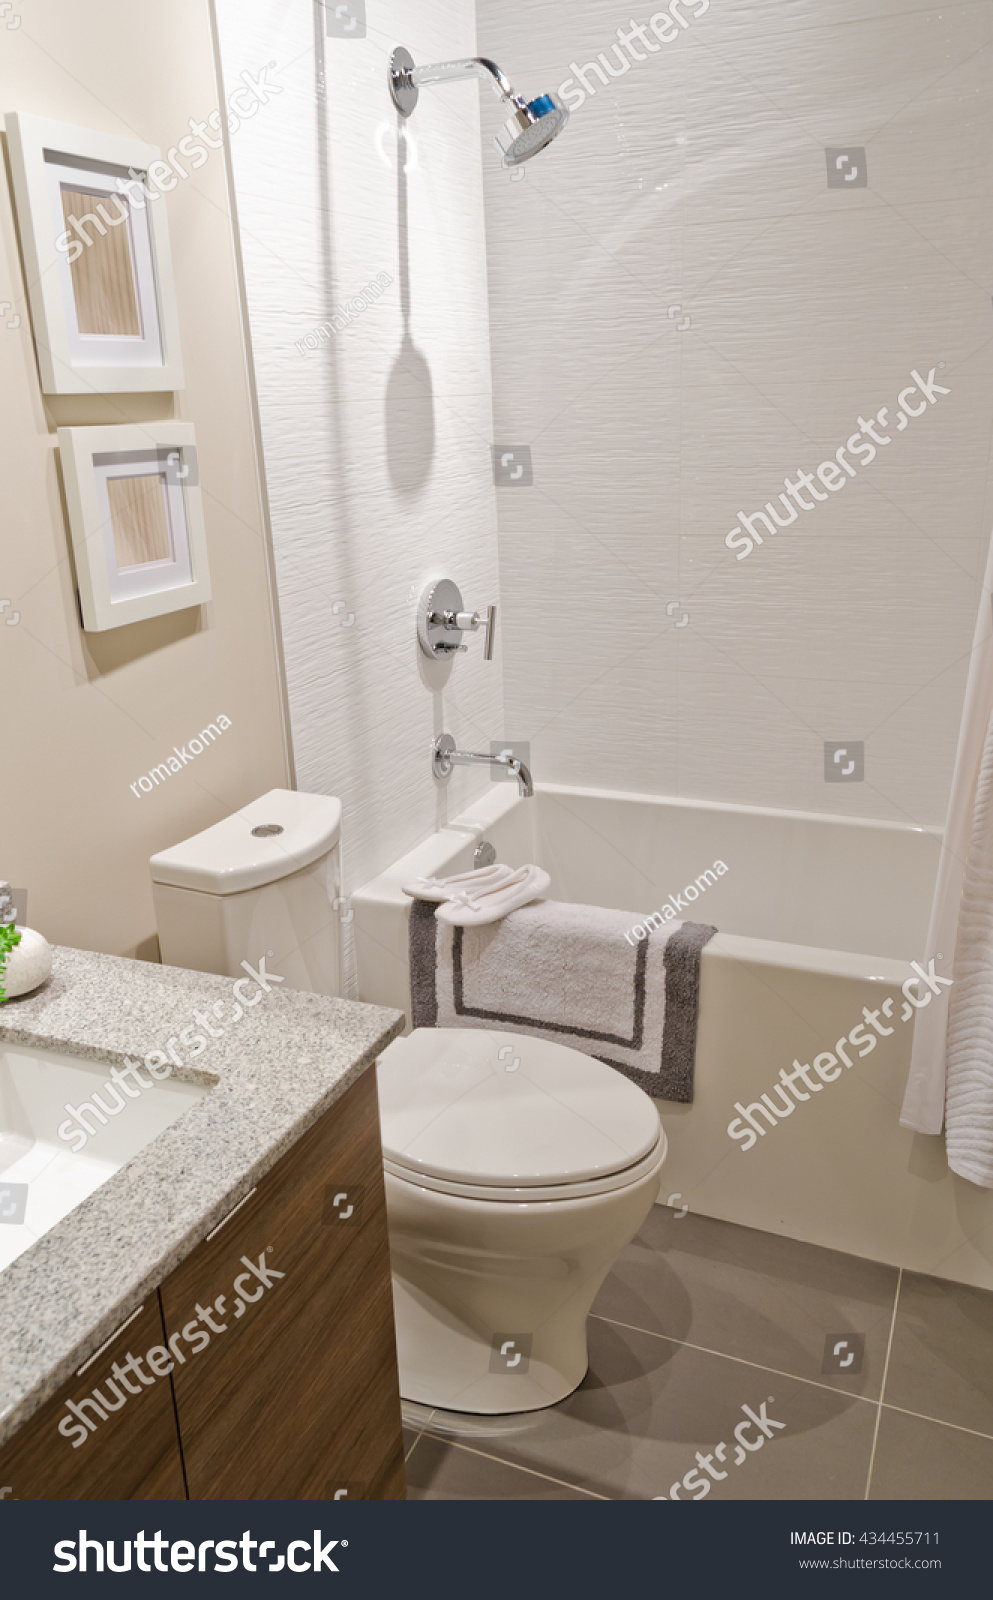 Nicely decorated modern washroom, bathroom with the toilet sit and ...